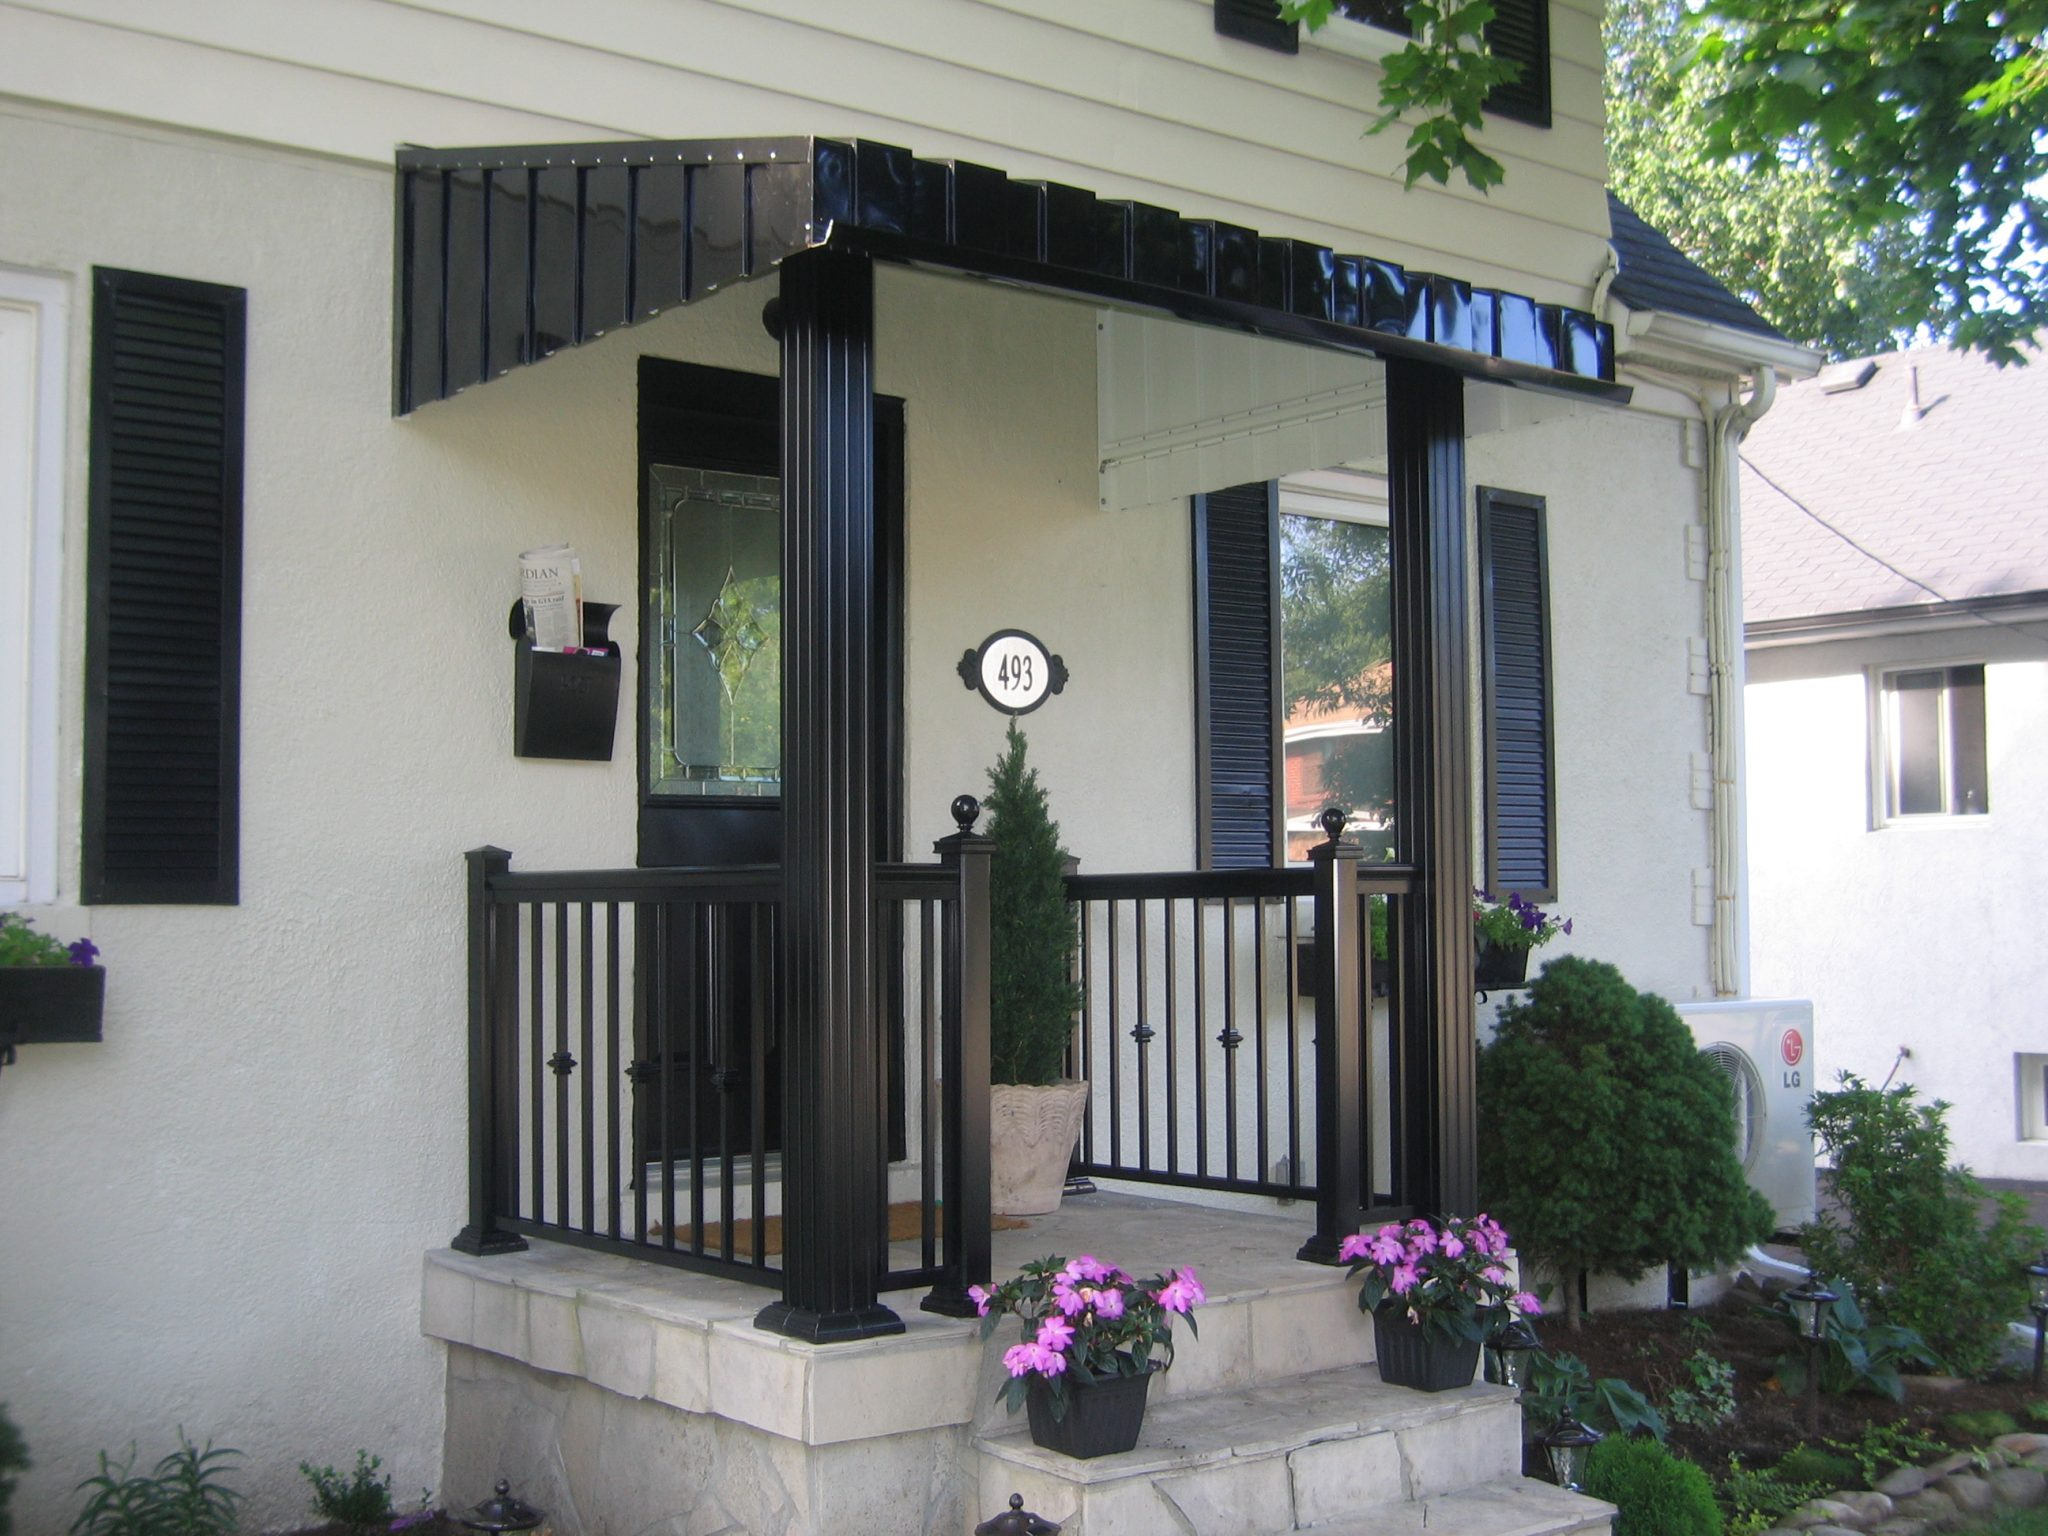 posts front post to cedar pertaining aluminum porch design ideas hd exotic columns home steps within railings